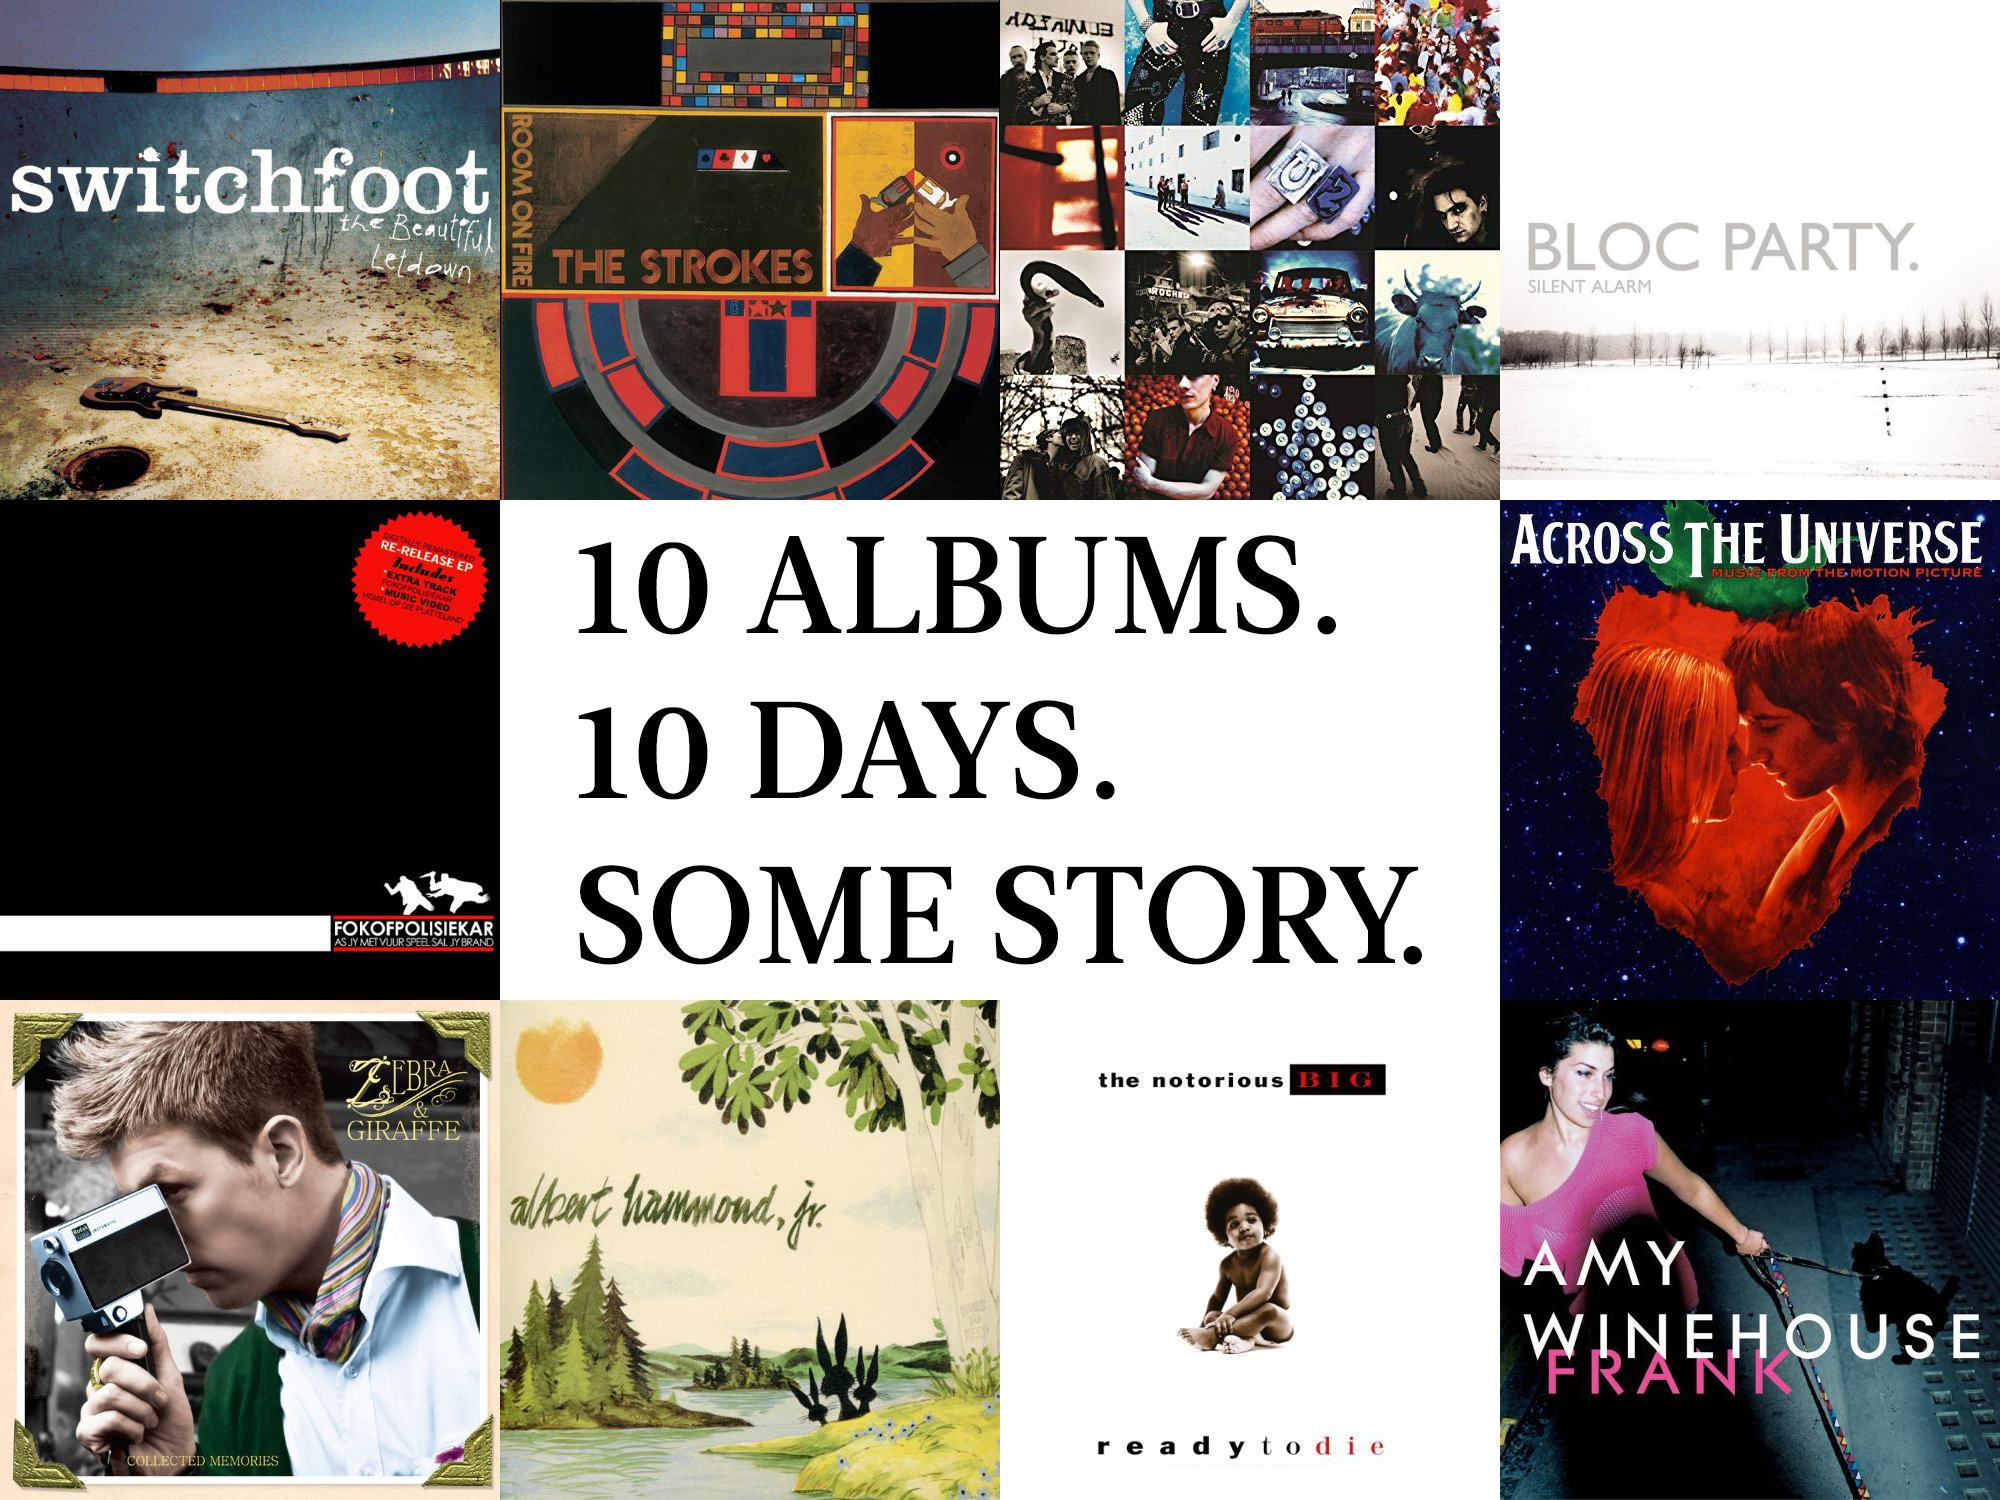 So what's your story? Have you been tagged in the 10 Albums challenge too? Let me know in the comments what albums you'd choose.